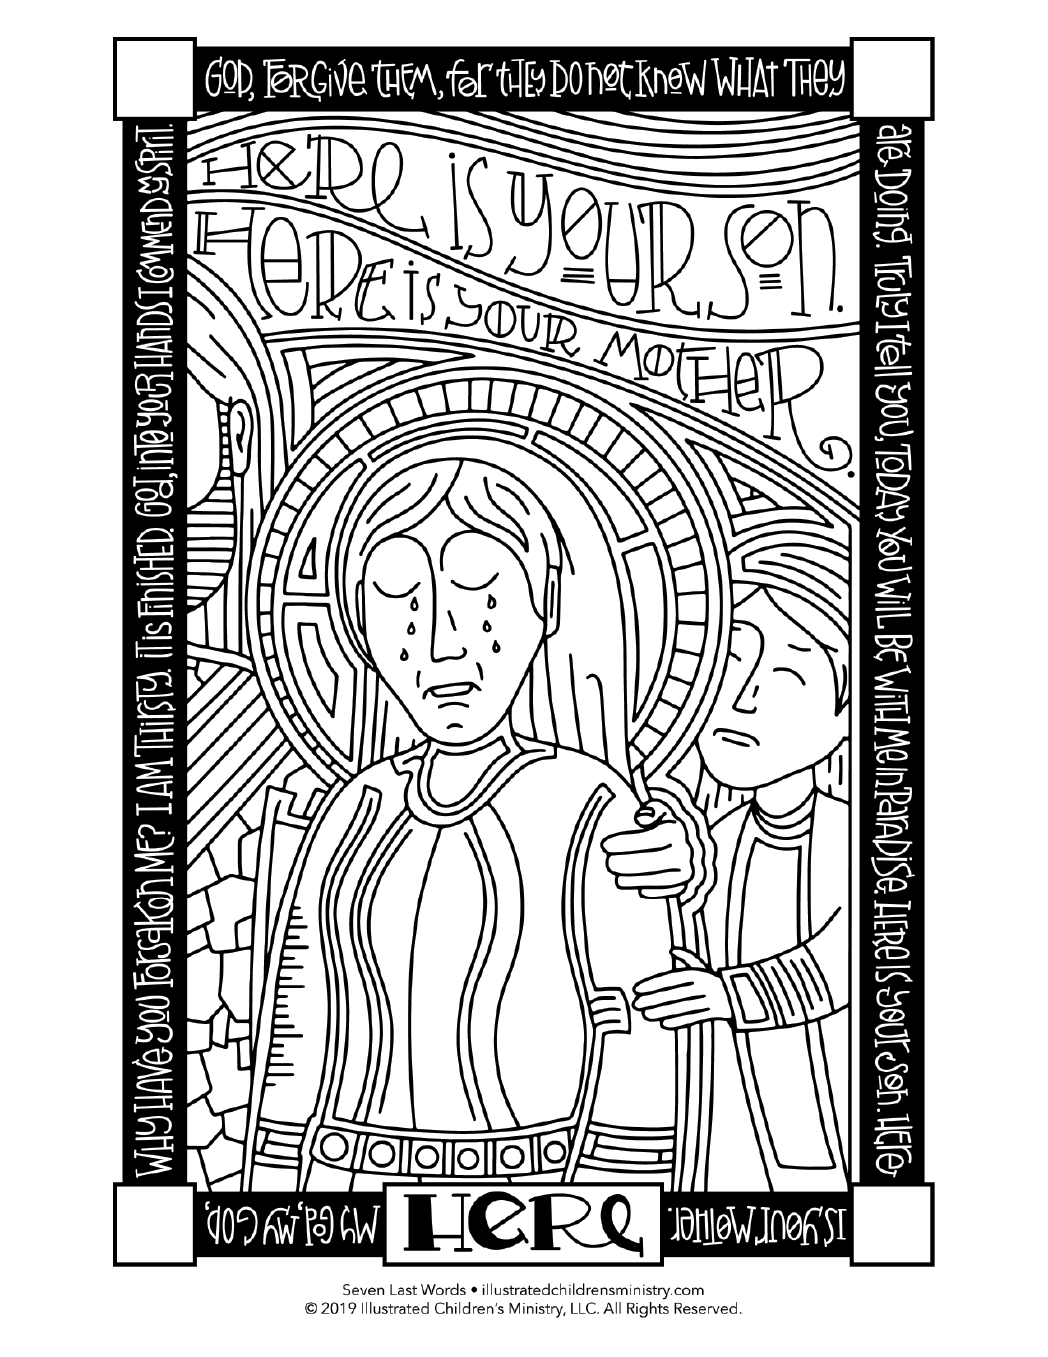 Seven Last Words coloring page - Here